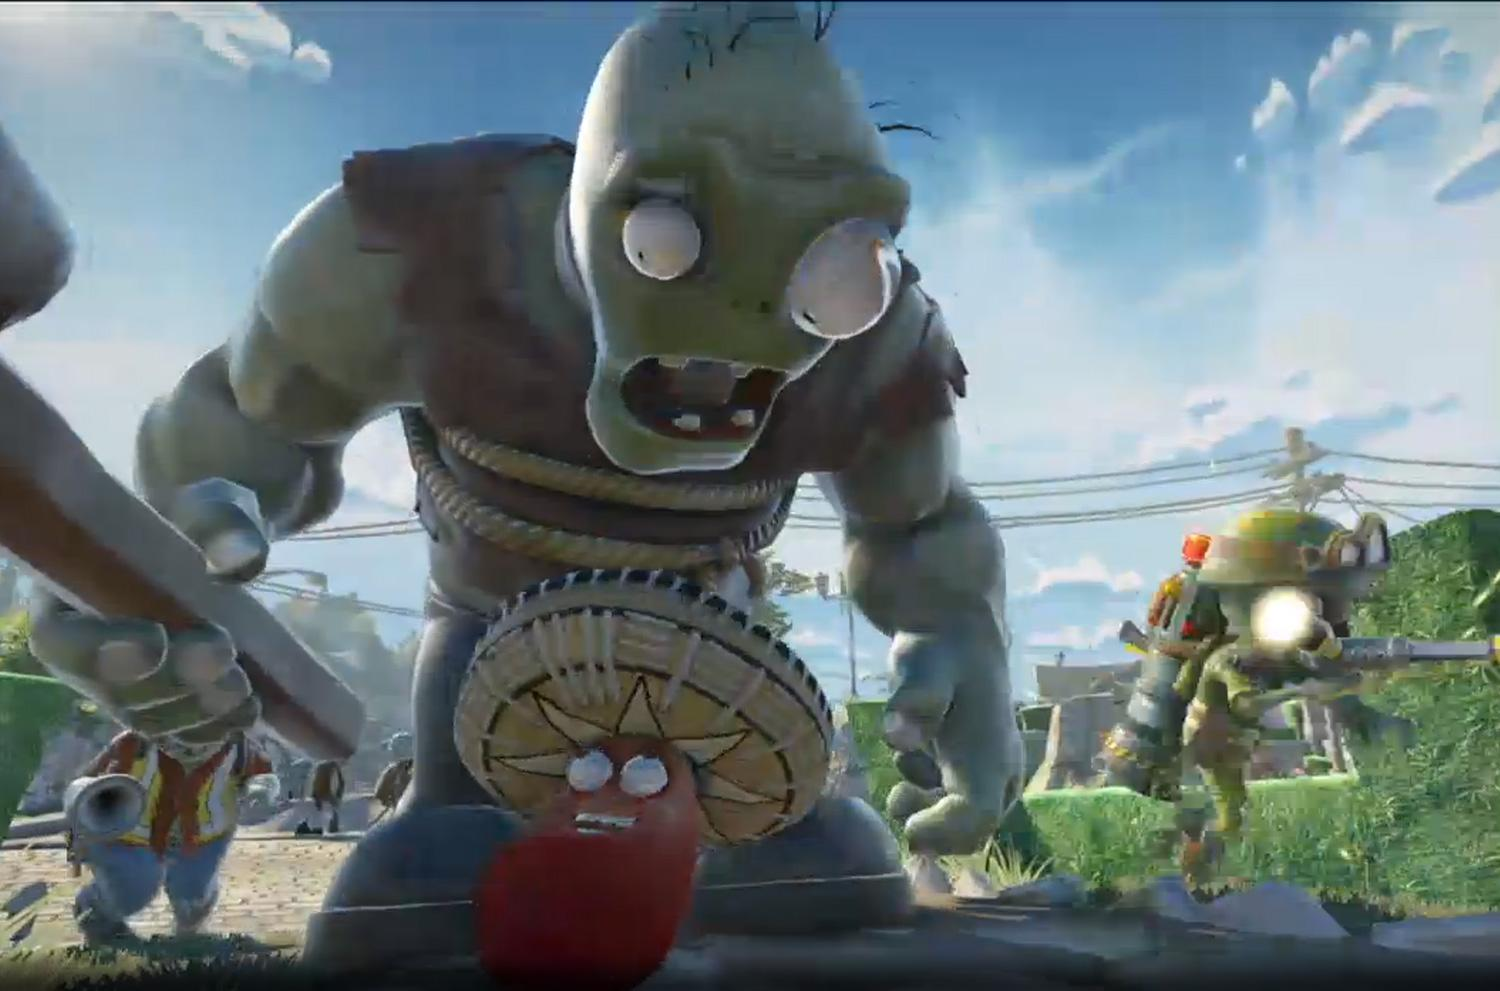 August Release For Plants Vs Zombies Garden Warfare On